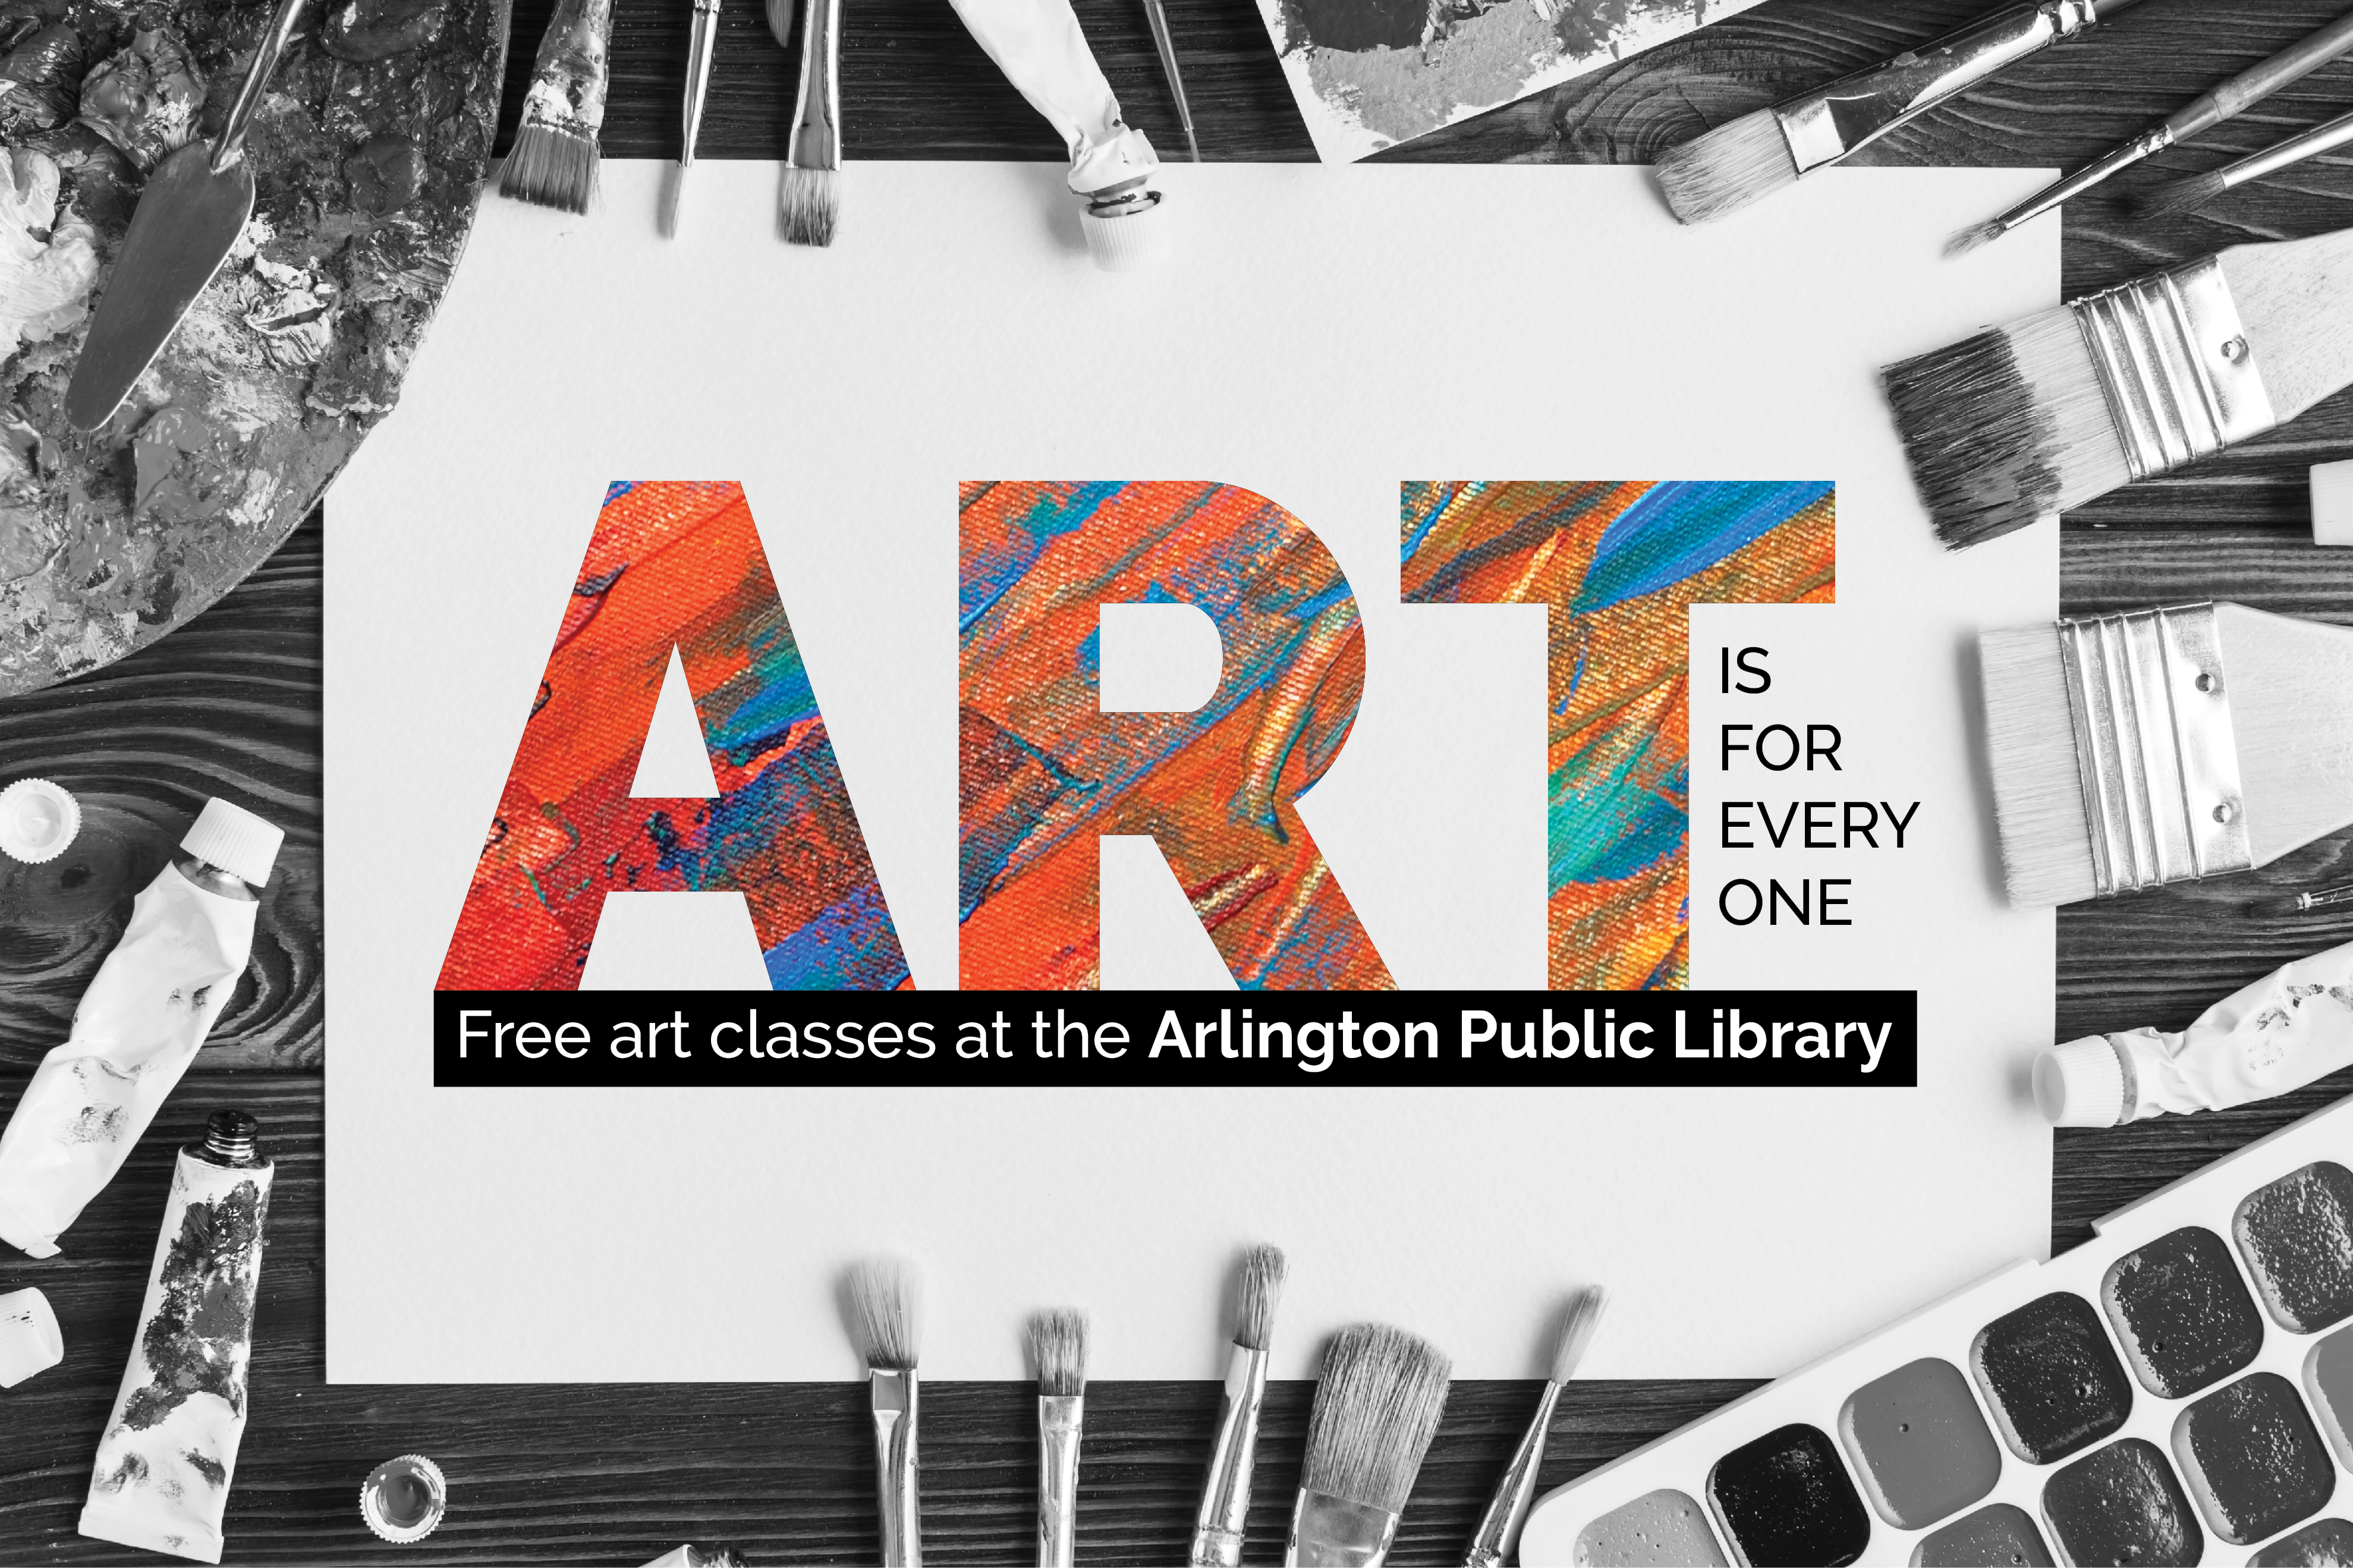 Art is For Everyone offers Free Streaming Art Workshops